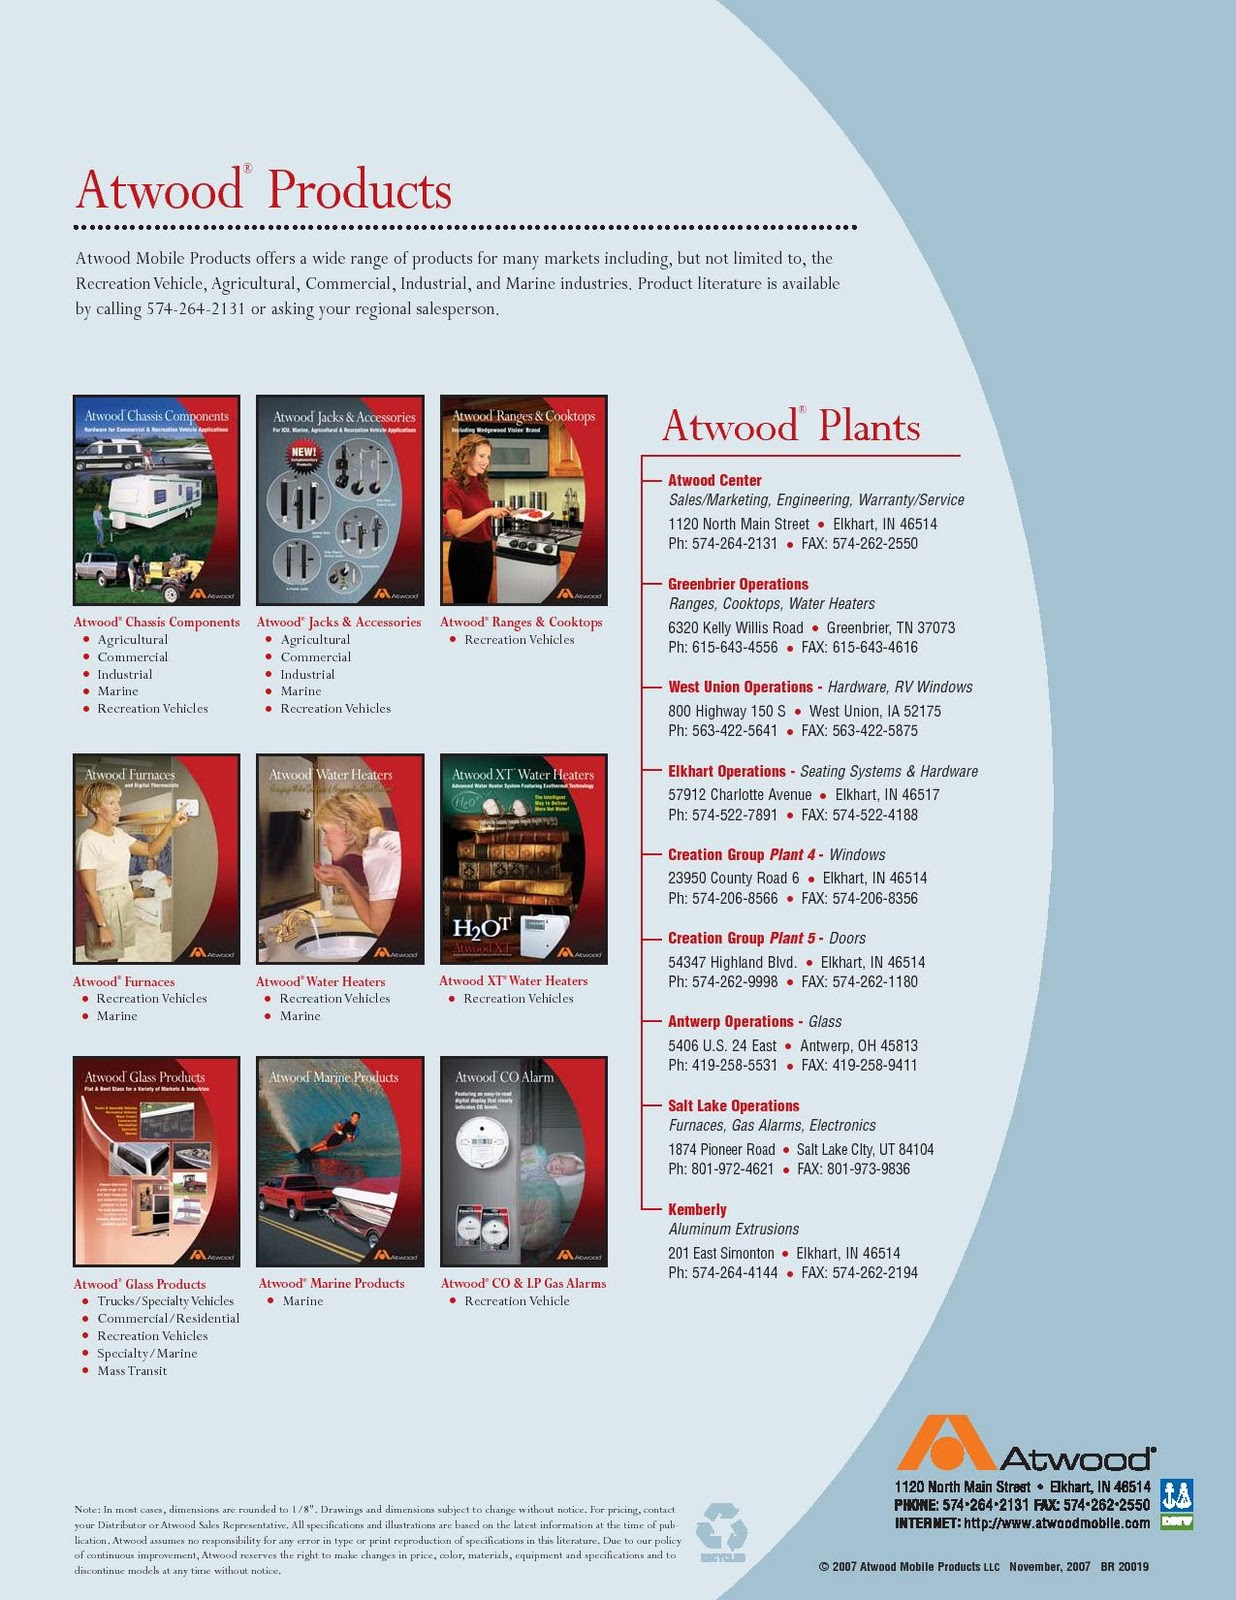 water+heater+%25288%2529 1983 fleetwood pace arrow owners manuals atwood water heater brochure  at creativeand.co